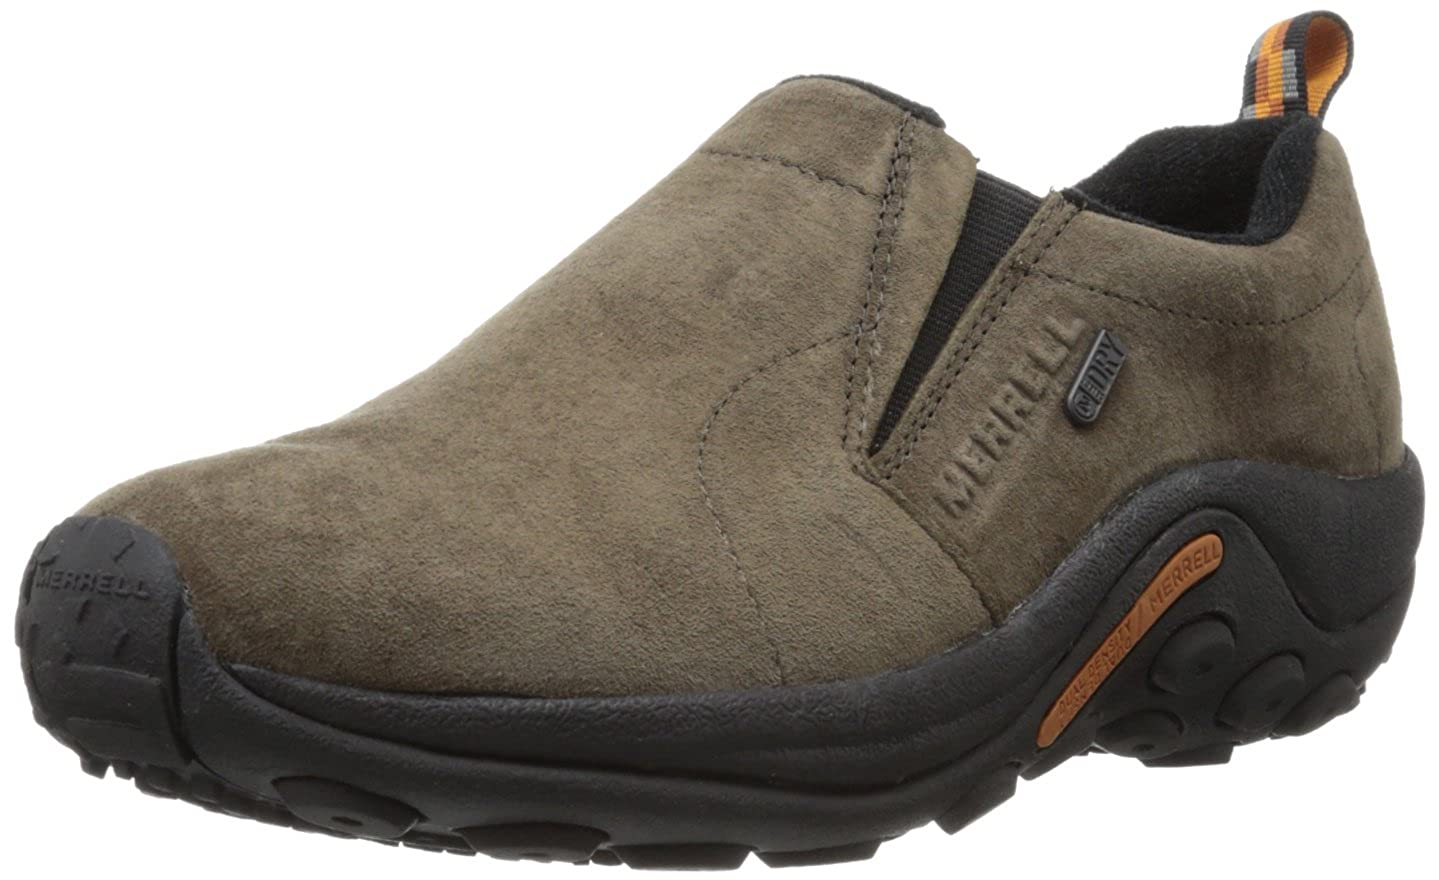 Merrell Men's Jungle Moc Waterproof Slip-On Shoe Merrell Footwear JUNGLE MOC WATERPROOF-M